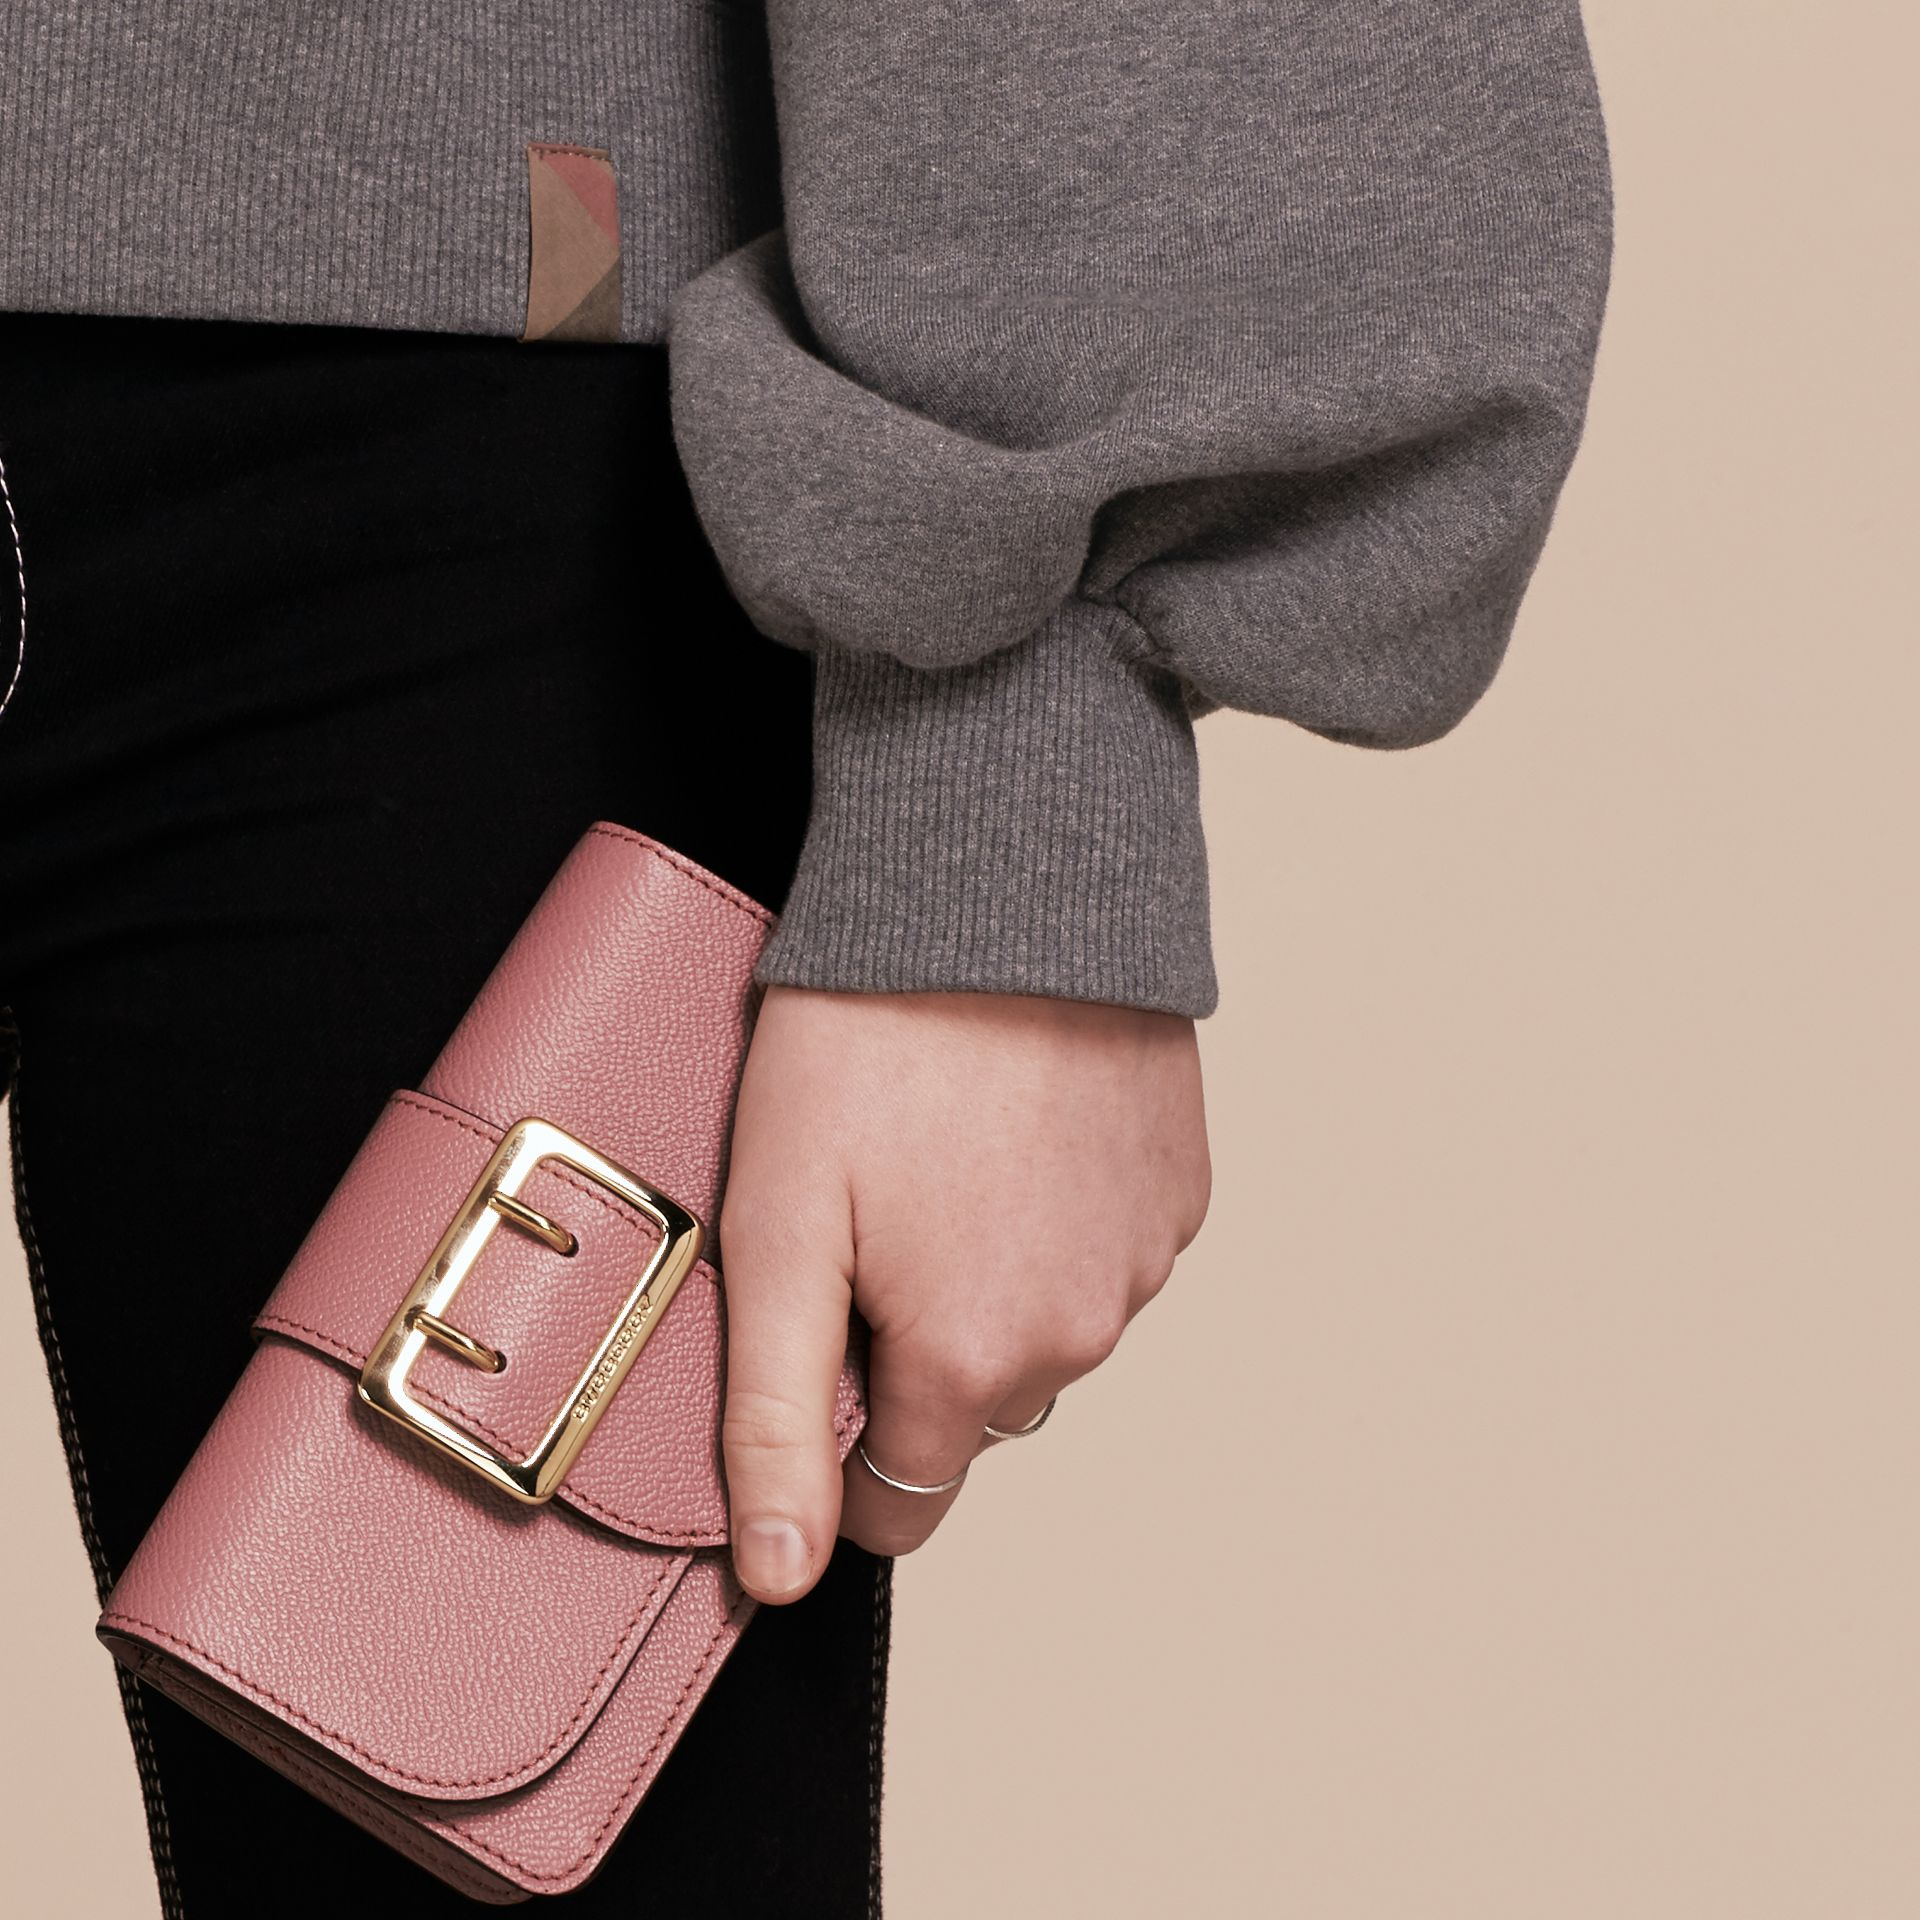 The Mini Buckle Bag in Grainy Leather in Dusty Pink - Women | Burberry Canada - gallery image 4